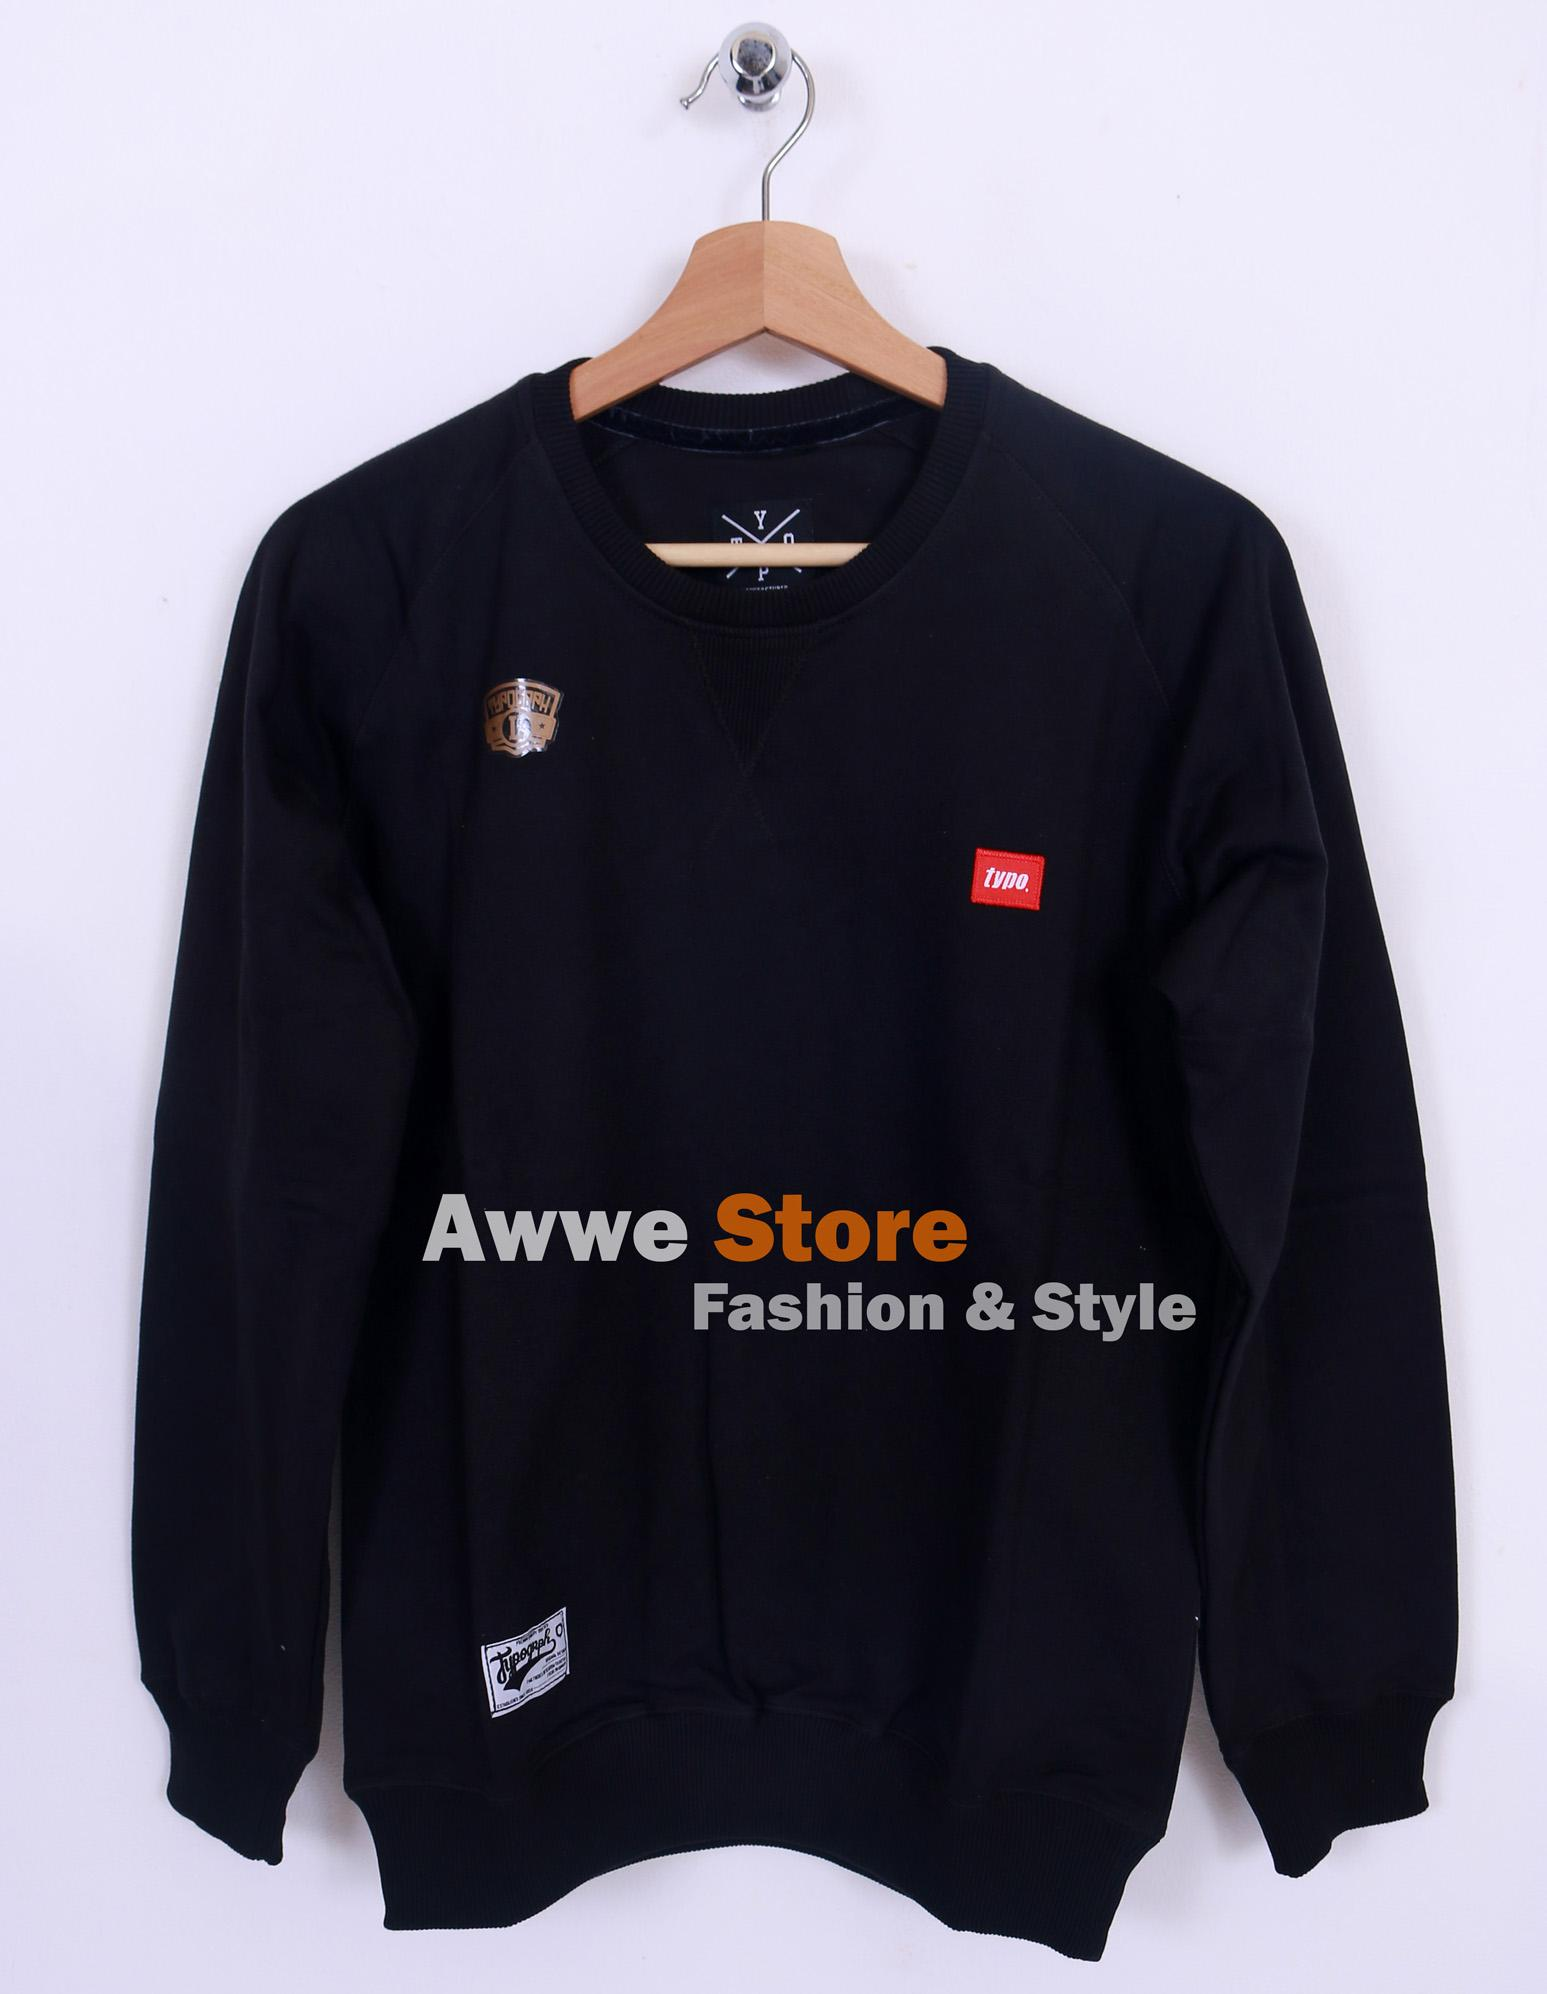 Awwe Store Sweater termurah / sweater pria / sweater distro / sweater tanah abang / sweater fashion / jaket / sweater thypograph 05